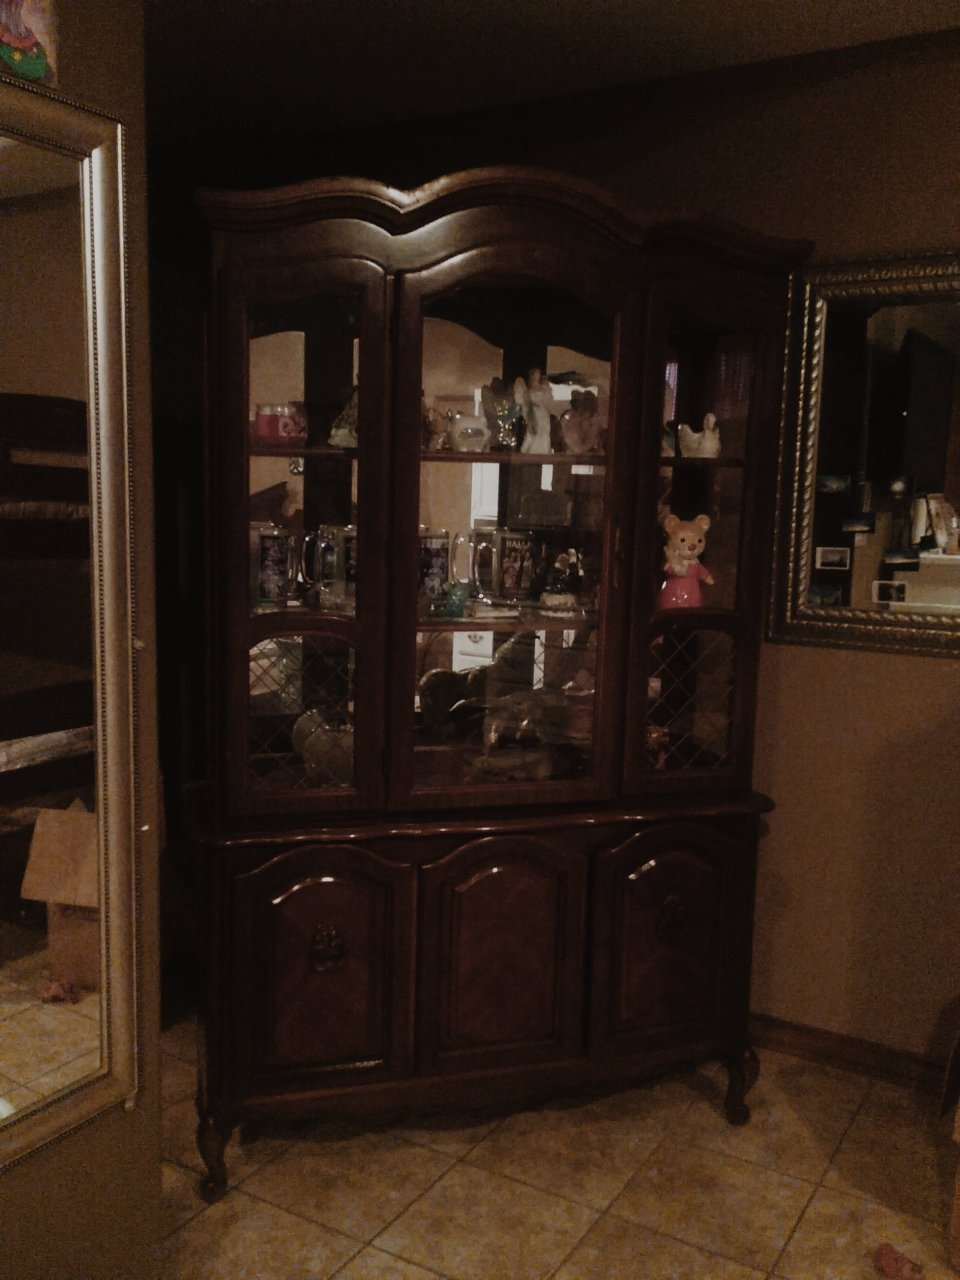 I Need To Know How Much This China Cabinet Is Please I Would Really Like To  Know